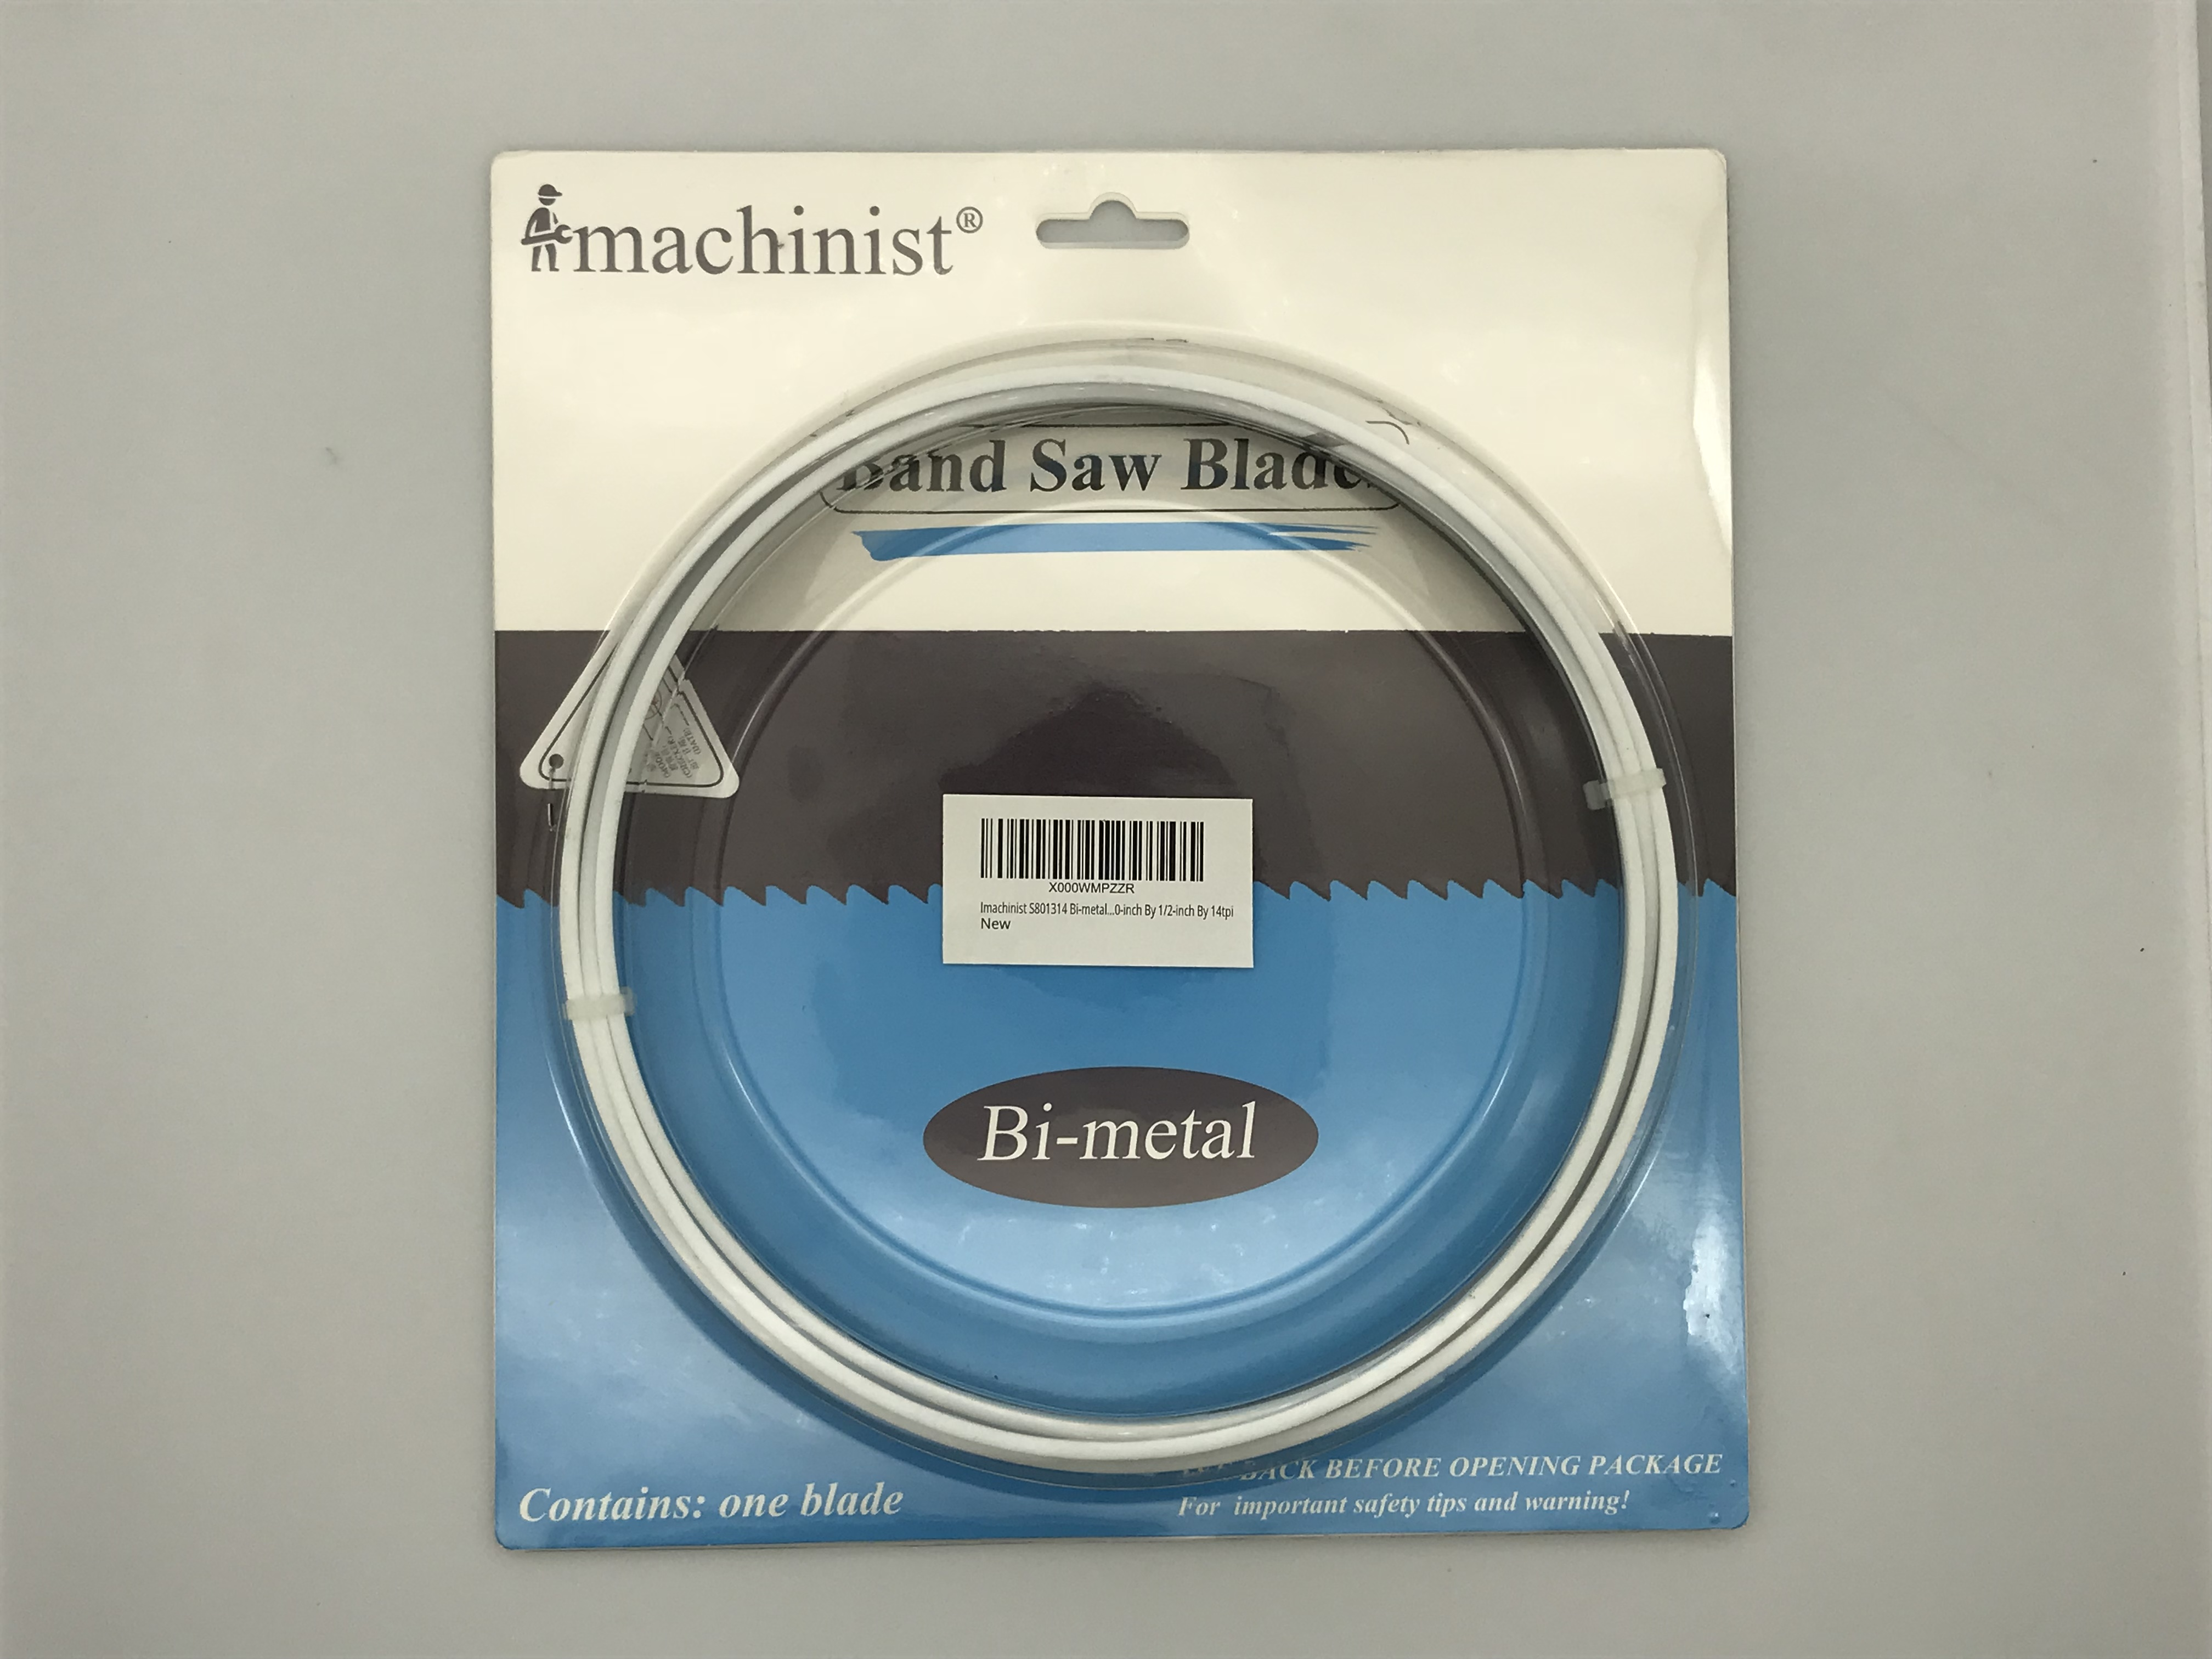 Imachinist S801314 Bi-metal Band Saw Blades 80-inch By 1//2-inch By 14tpi